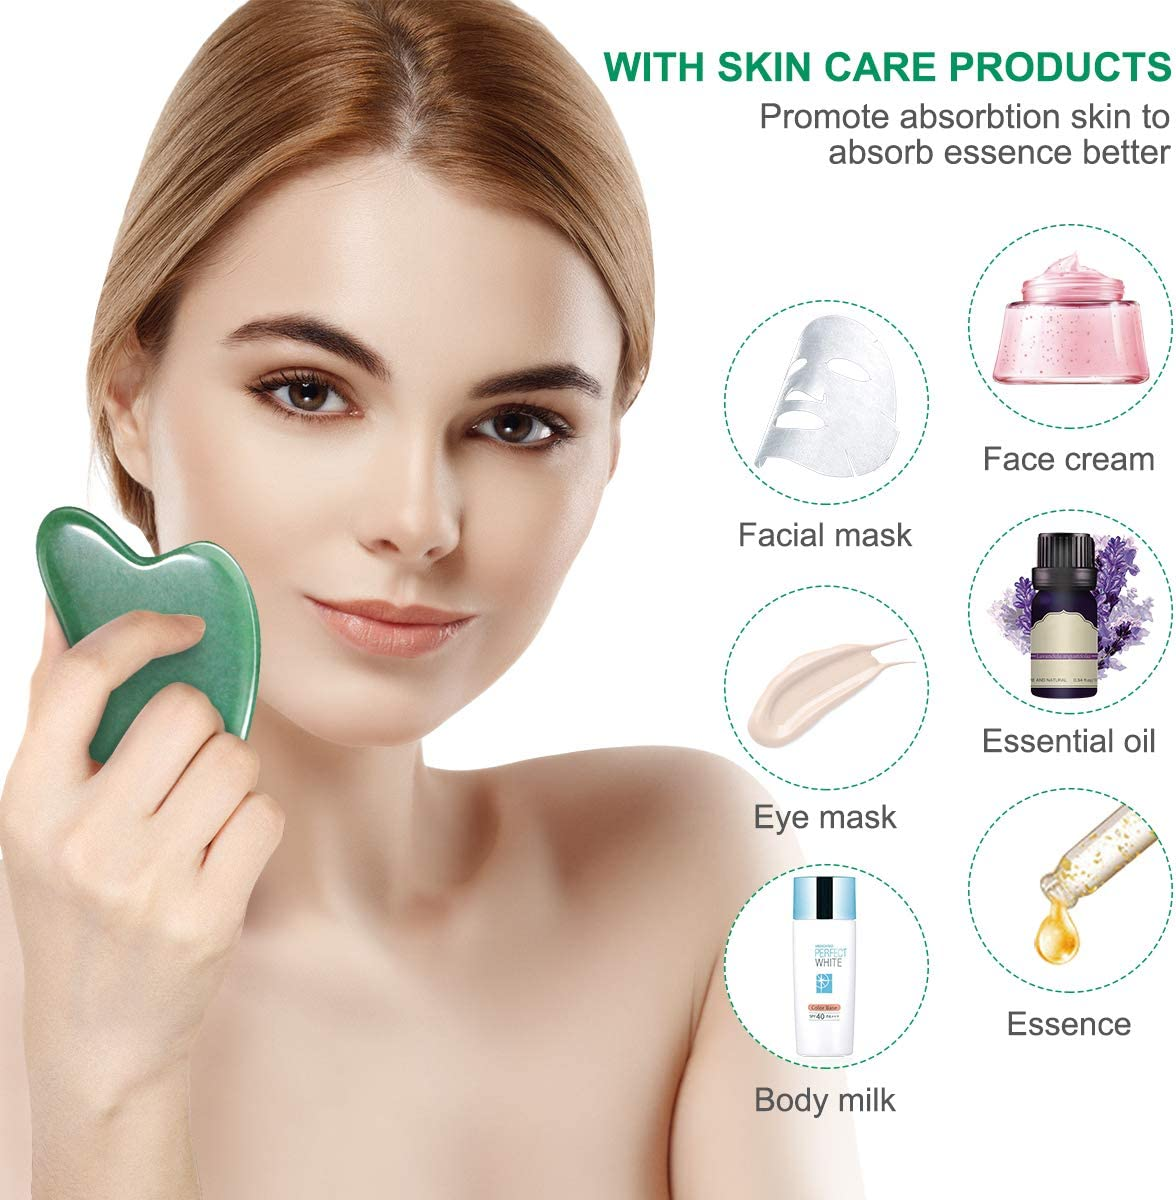 Gua Sha Tool, Natural Gua Sha Scraping Jade Stone for Facial Skincare Scraping Massage Tools